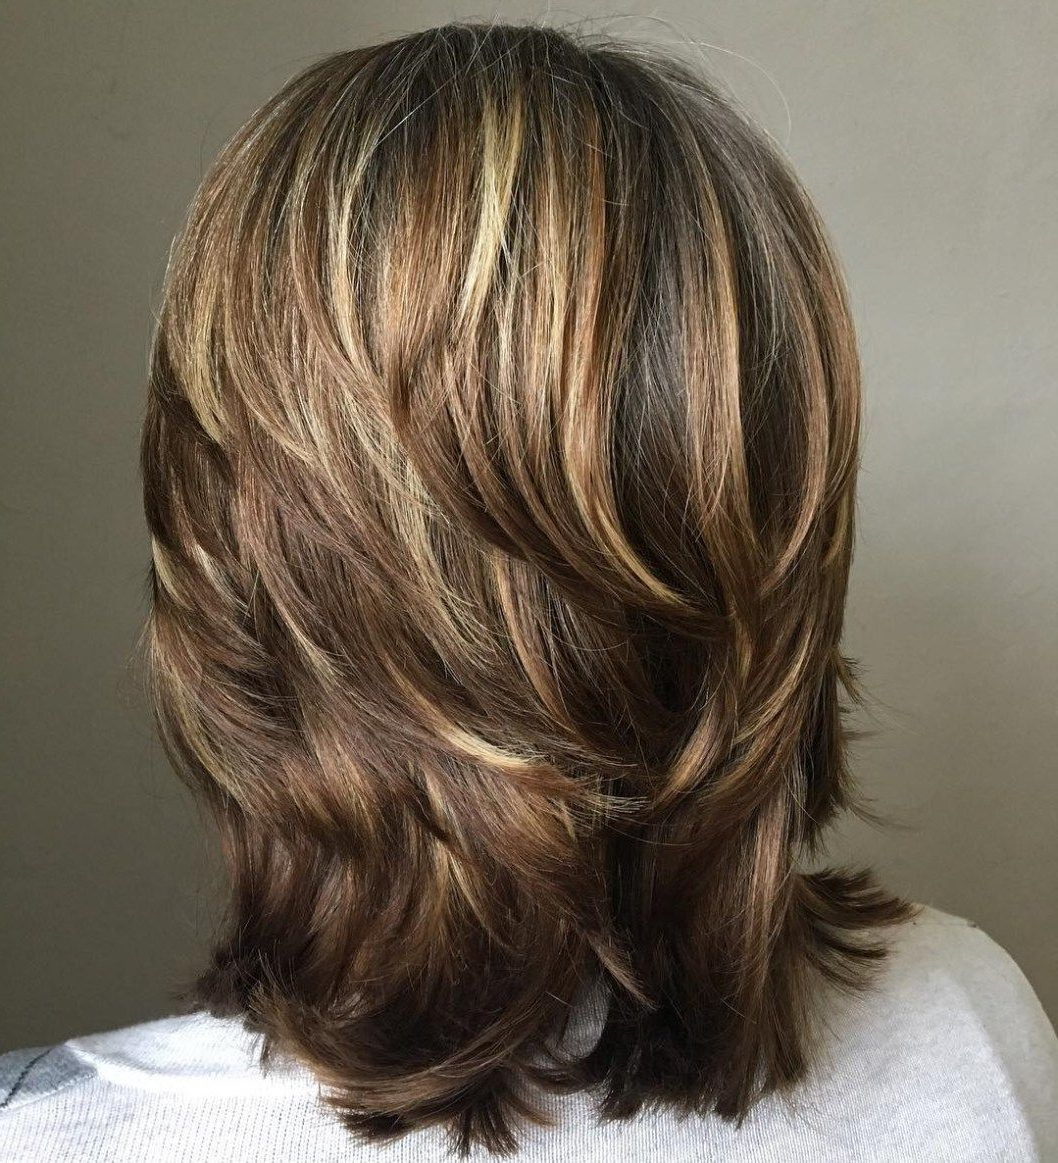 Pin On Hair Intended For Recent Mid Length Feathered Shag Haircuts For Thick Hair (View 11 of 20)